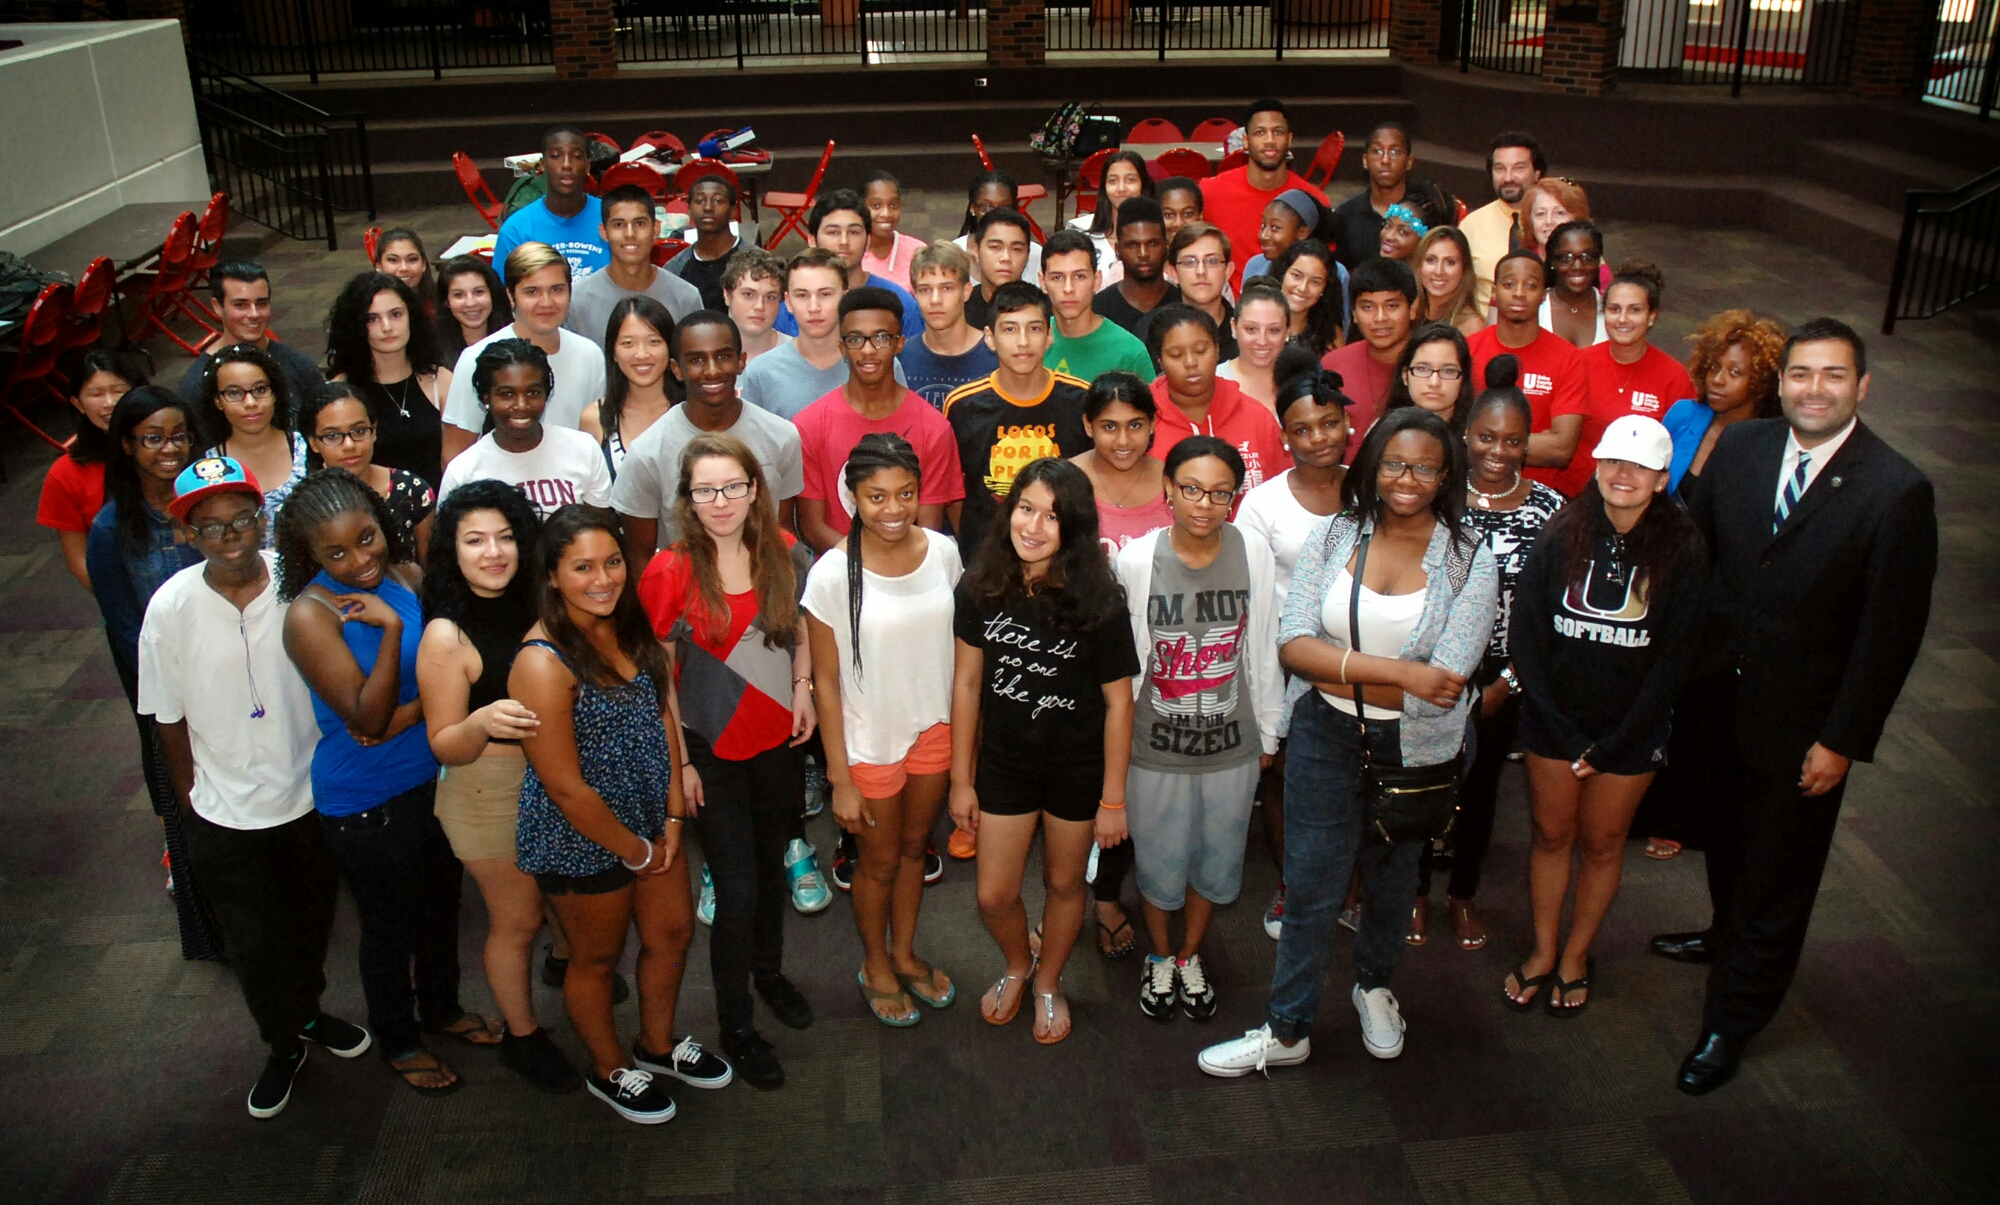 New jersey union county cranford - Union County Freeholders College For Teens